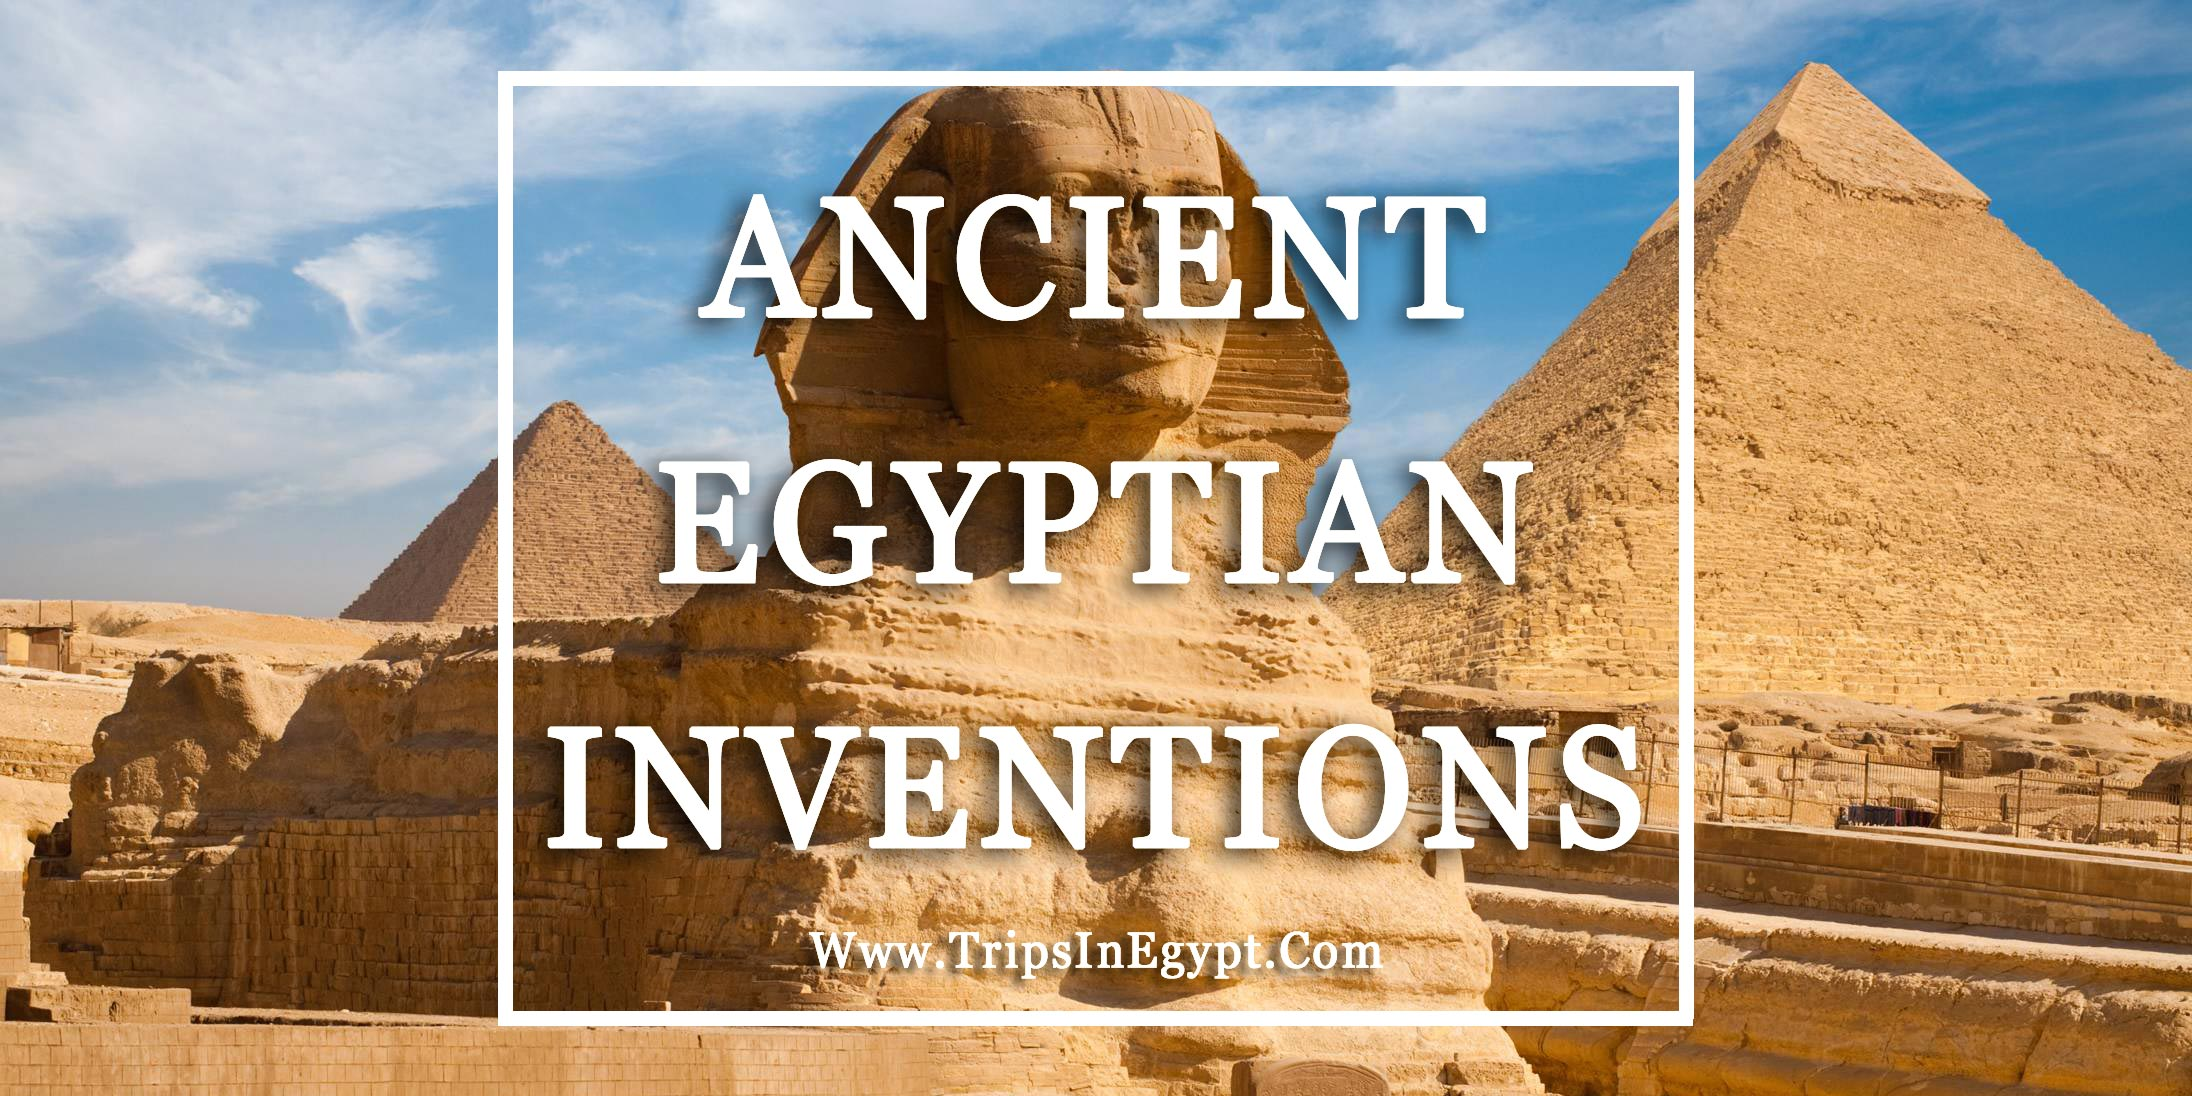 Ancient Egyptian Inventions - Trips in Egypt